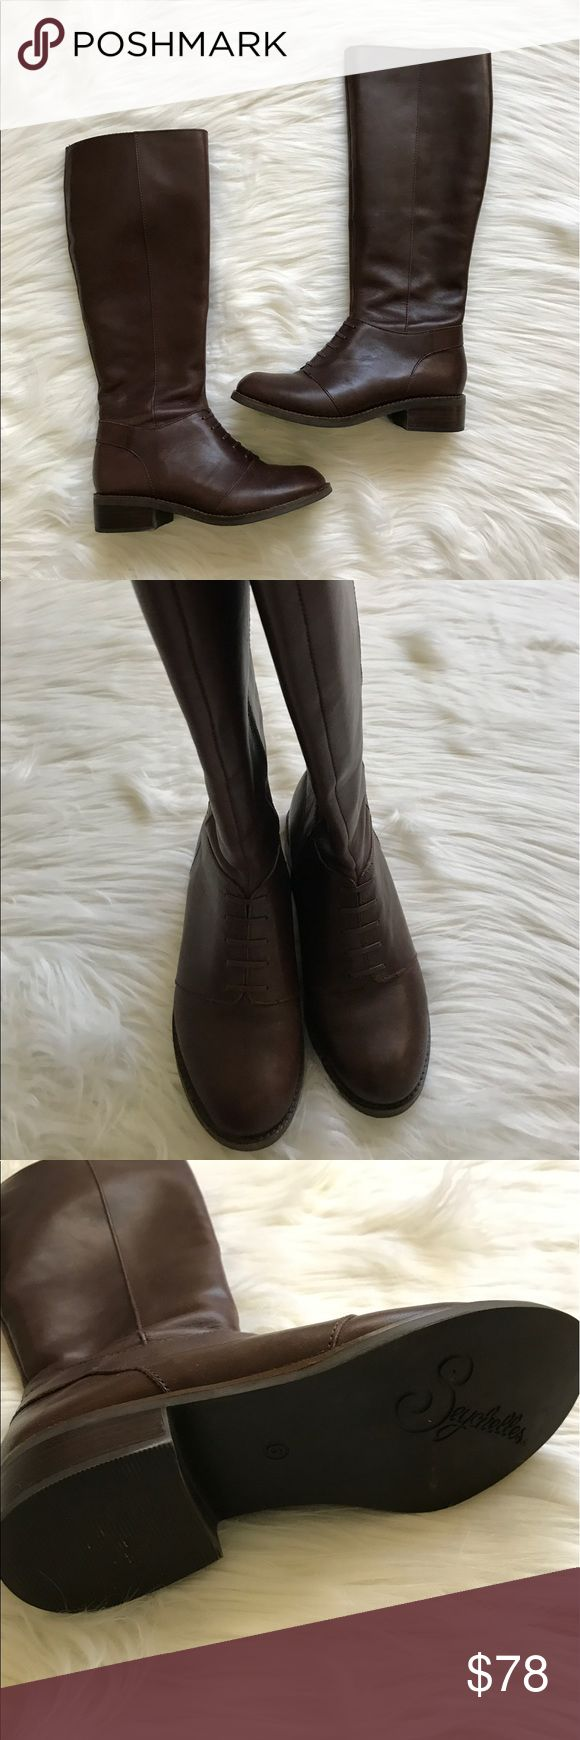 Seychelles Brown Zip Up Riding Boots Worn only a couple times.  In excellent condition.  Leather is super soft and the insides are clean.  Zipper on inner side, Faux laces look.  Women's Size 6. Seychelles Shoes